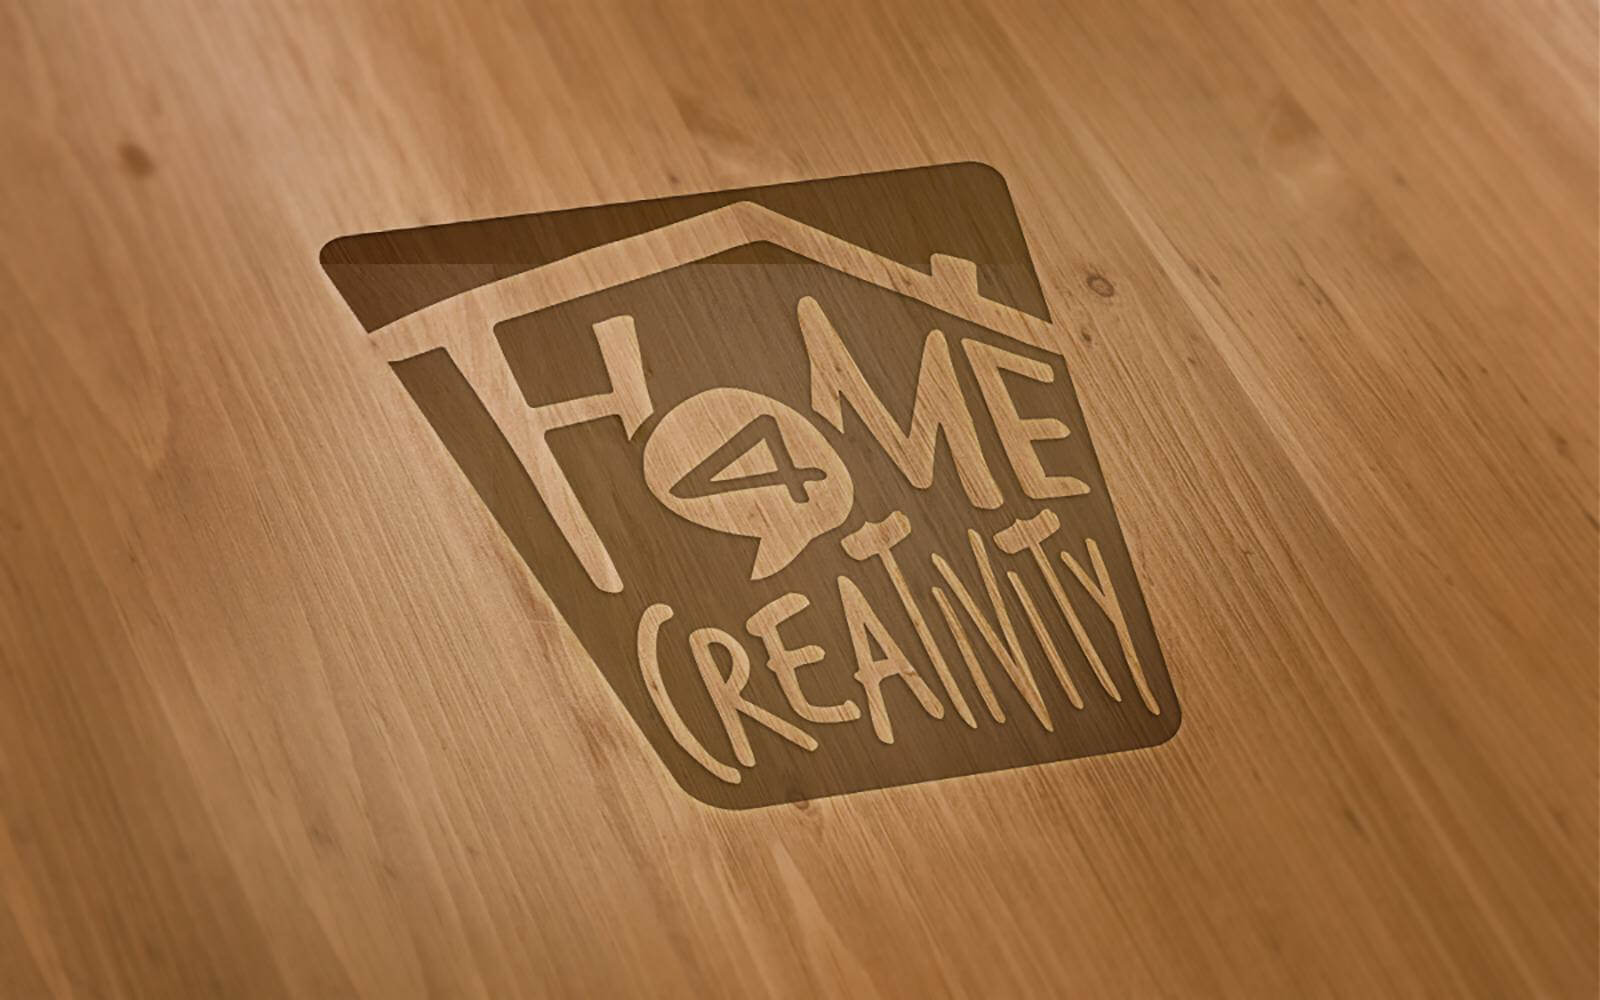 Home 4 Creativity – Brand Identity